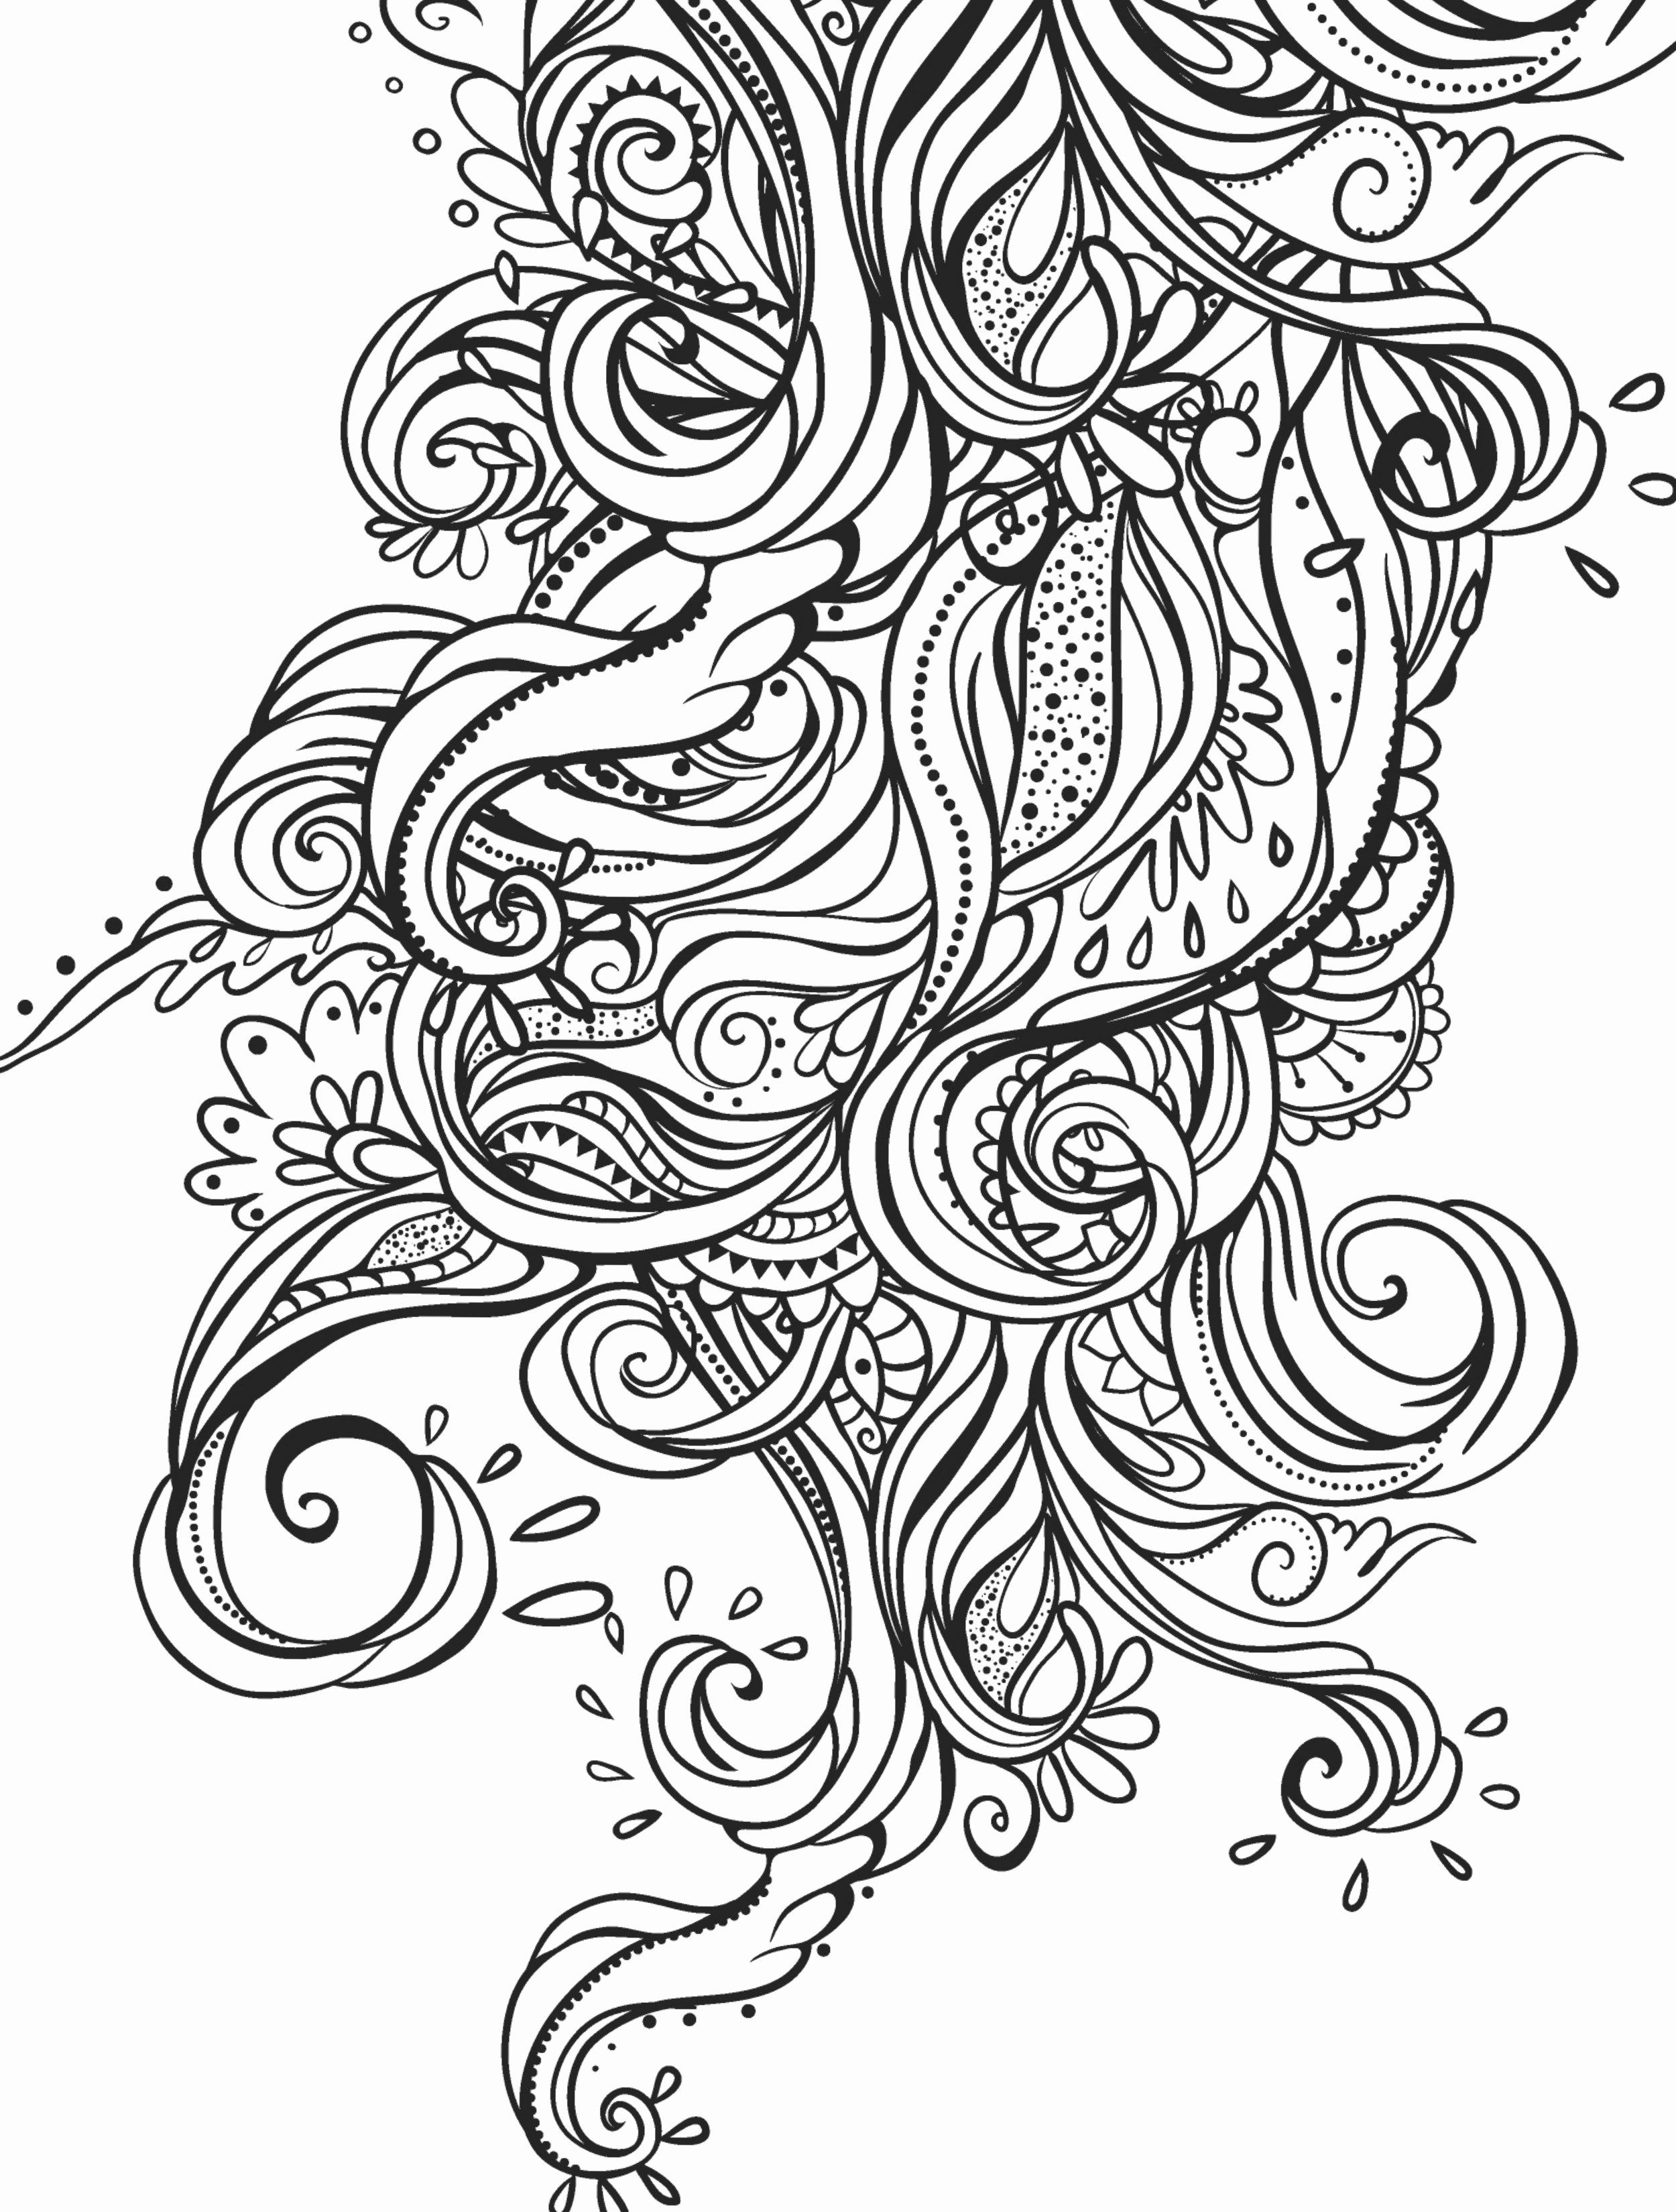 Coloring Pages For Adults Skulls Awesome 15 Crazy Busy Coloring Pages For Adults Page 5 Of 16 Sketsa Doodle Kulit